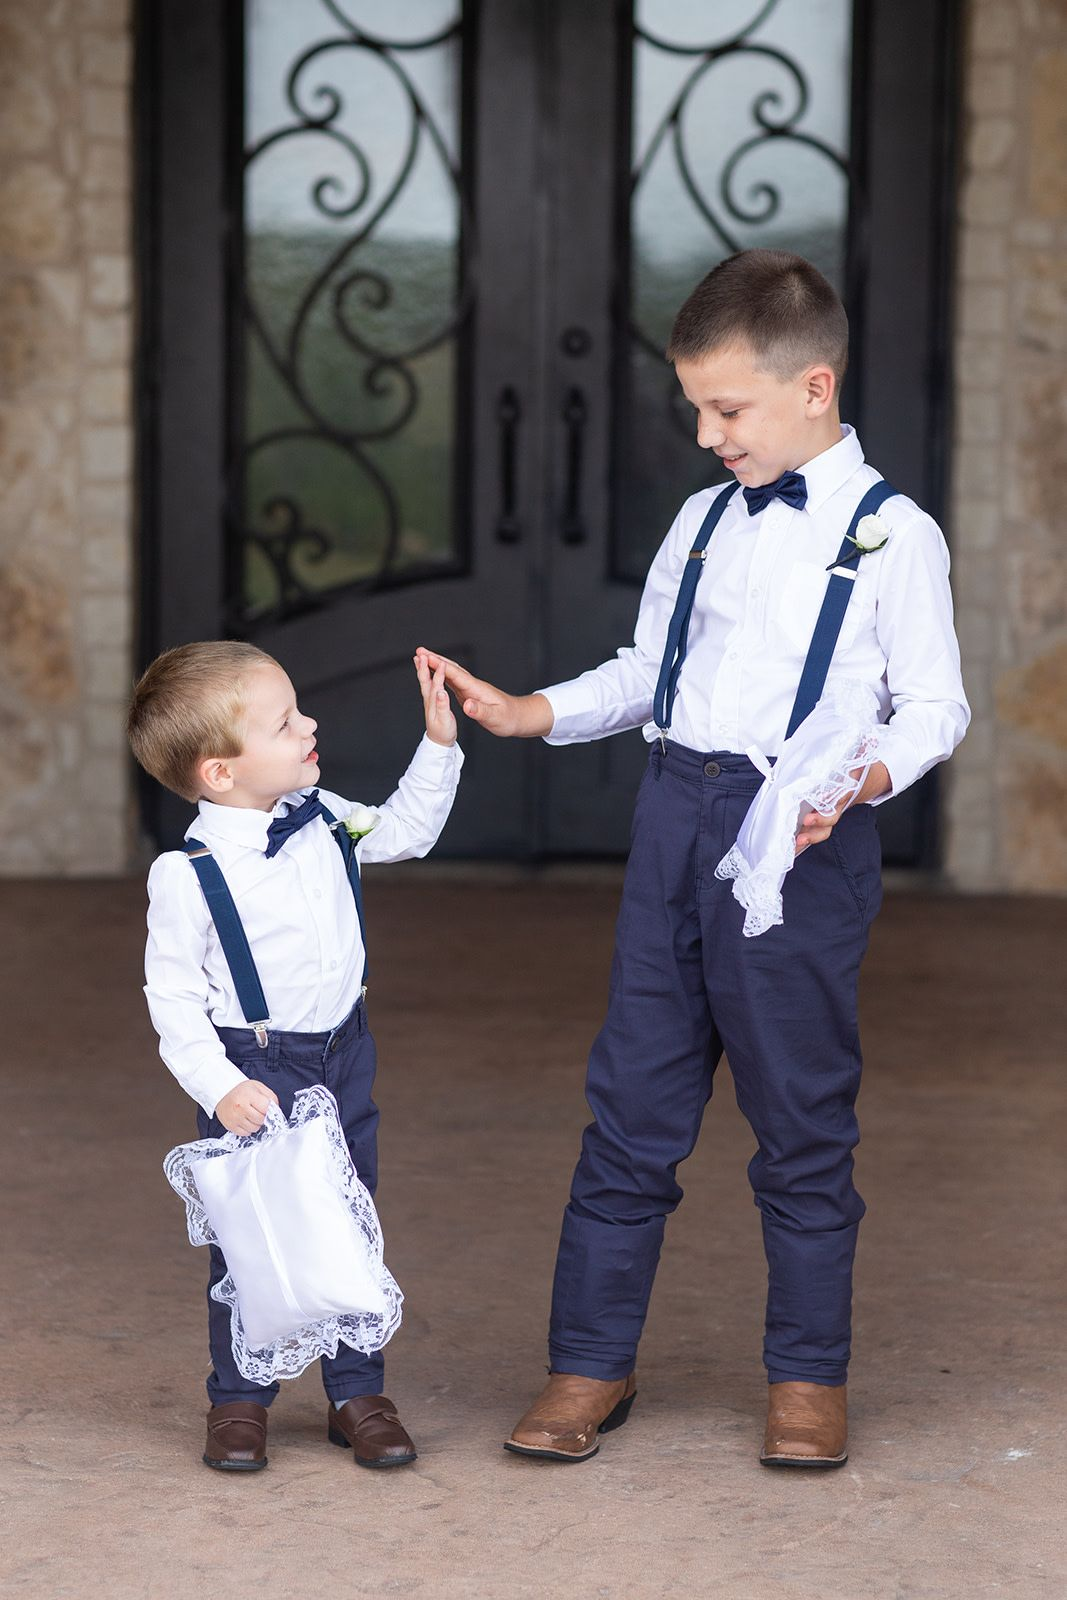 e45a2e6c0d summer wedding ring bearer outfits | ring bearers in navy blue pants,  suspenders,